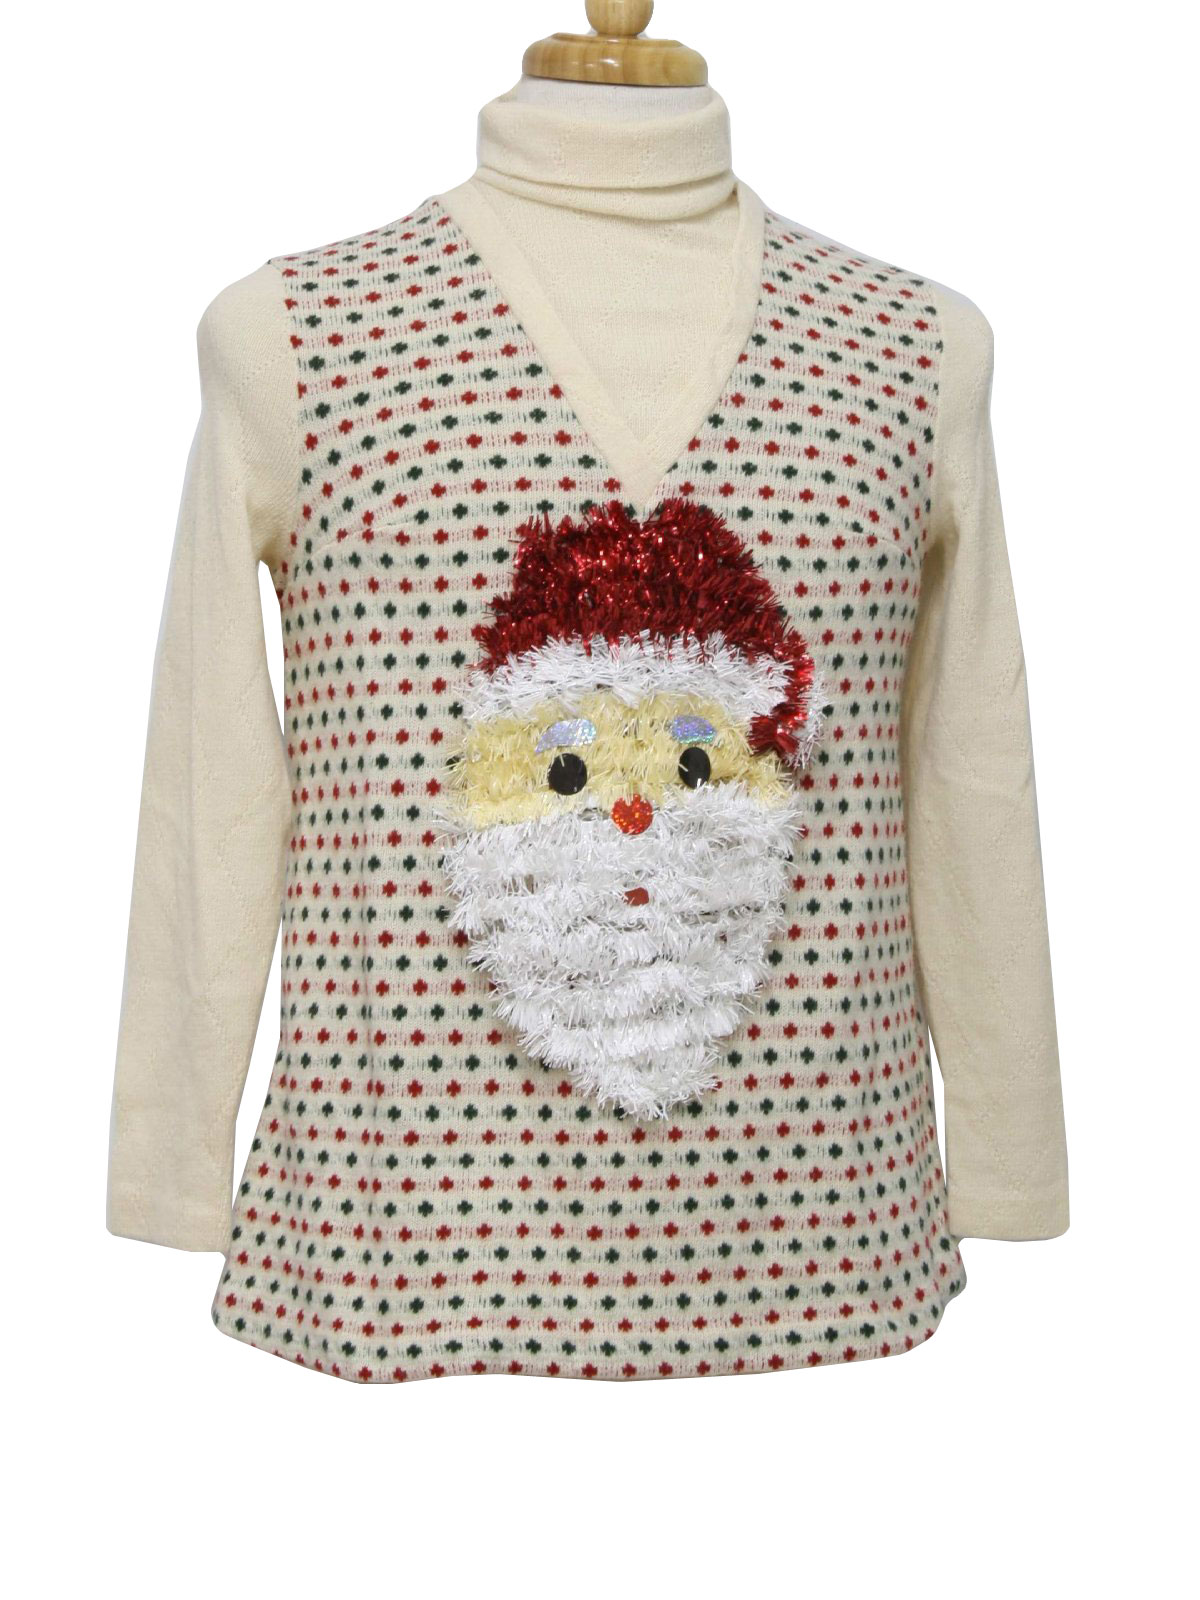 Retro Seventies Womens Ugly Christmas Sweater: Authentic 70s -Marian Sue- Wom...